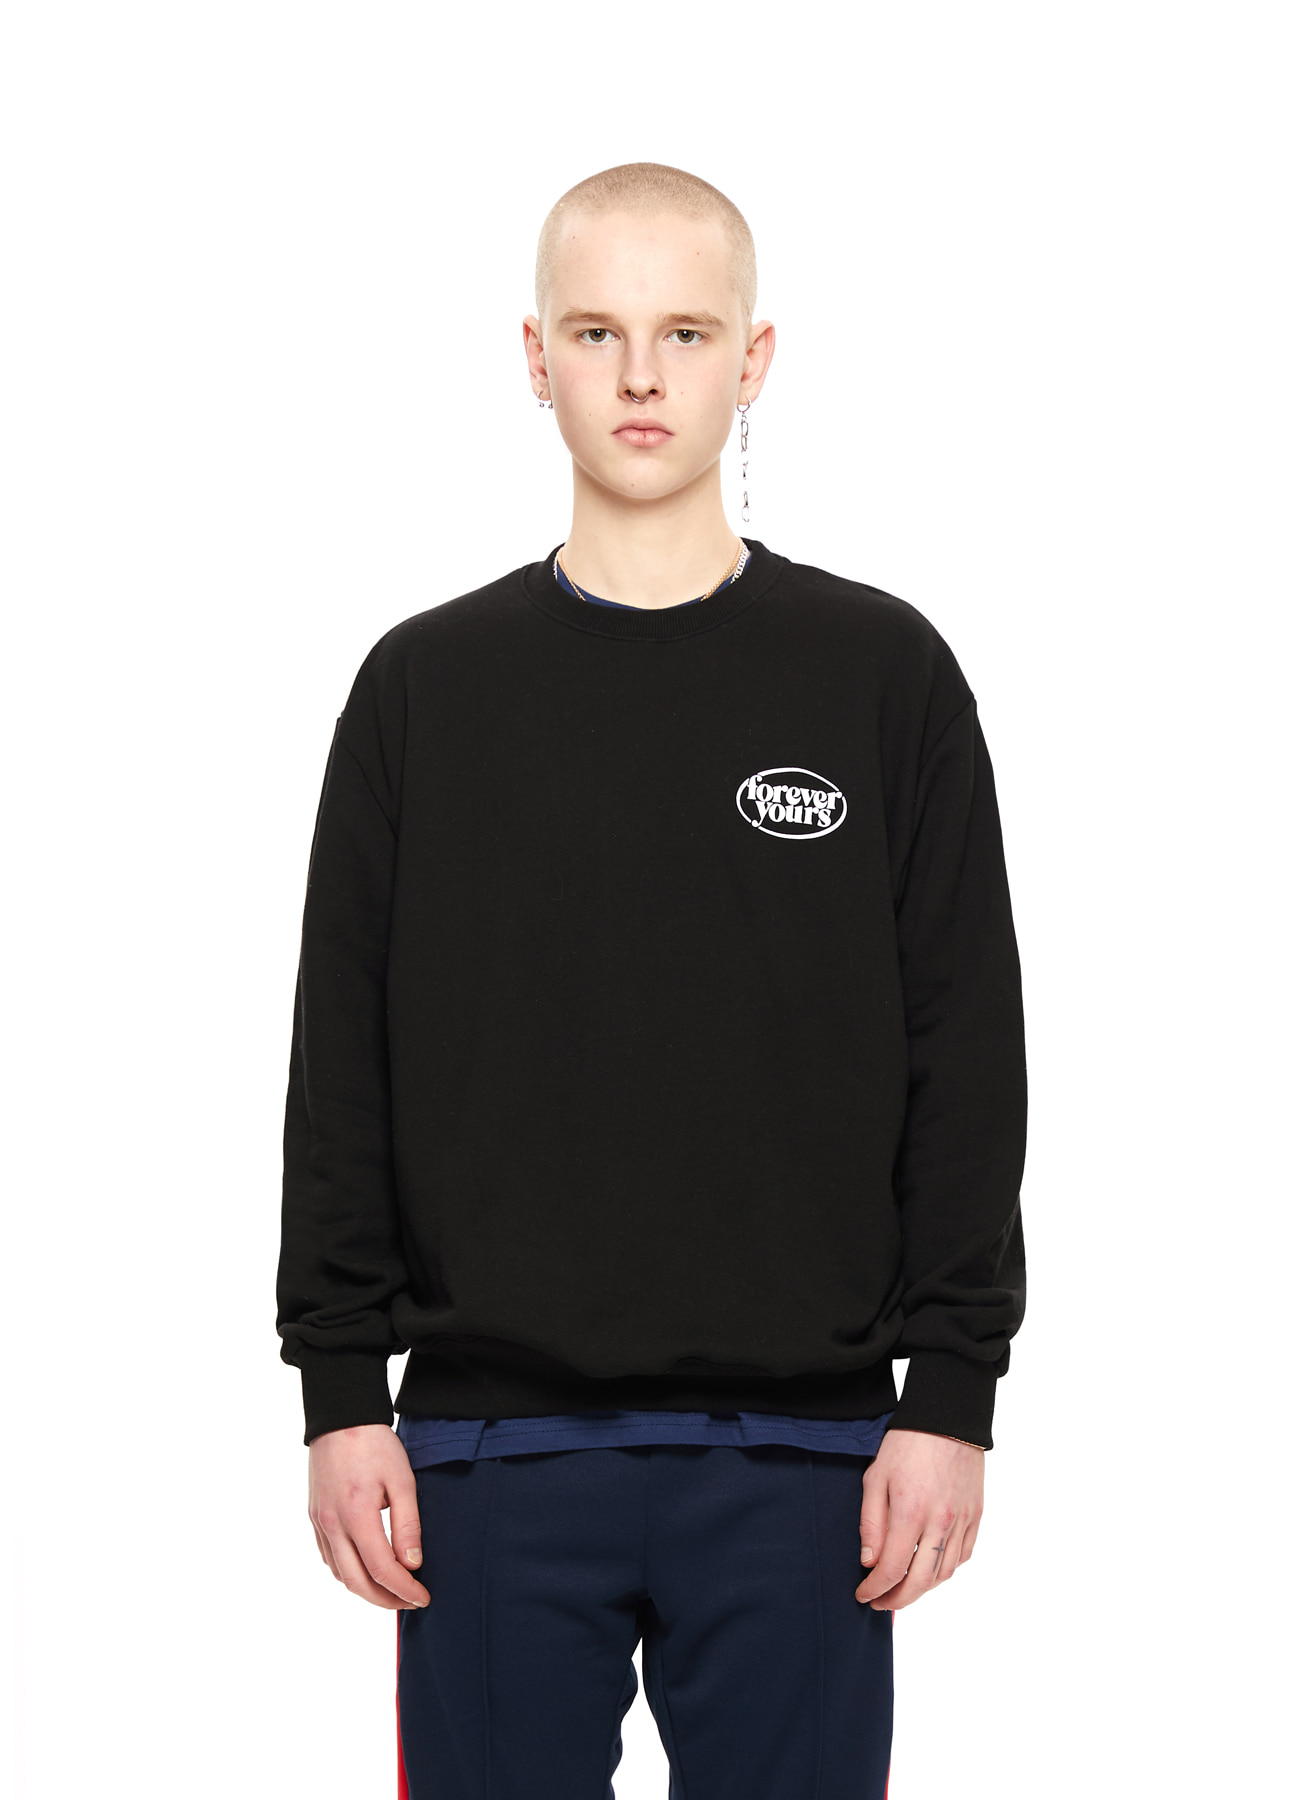 FOREVER YOURS SMALL LOGO SWEATSHIRTS_BK